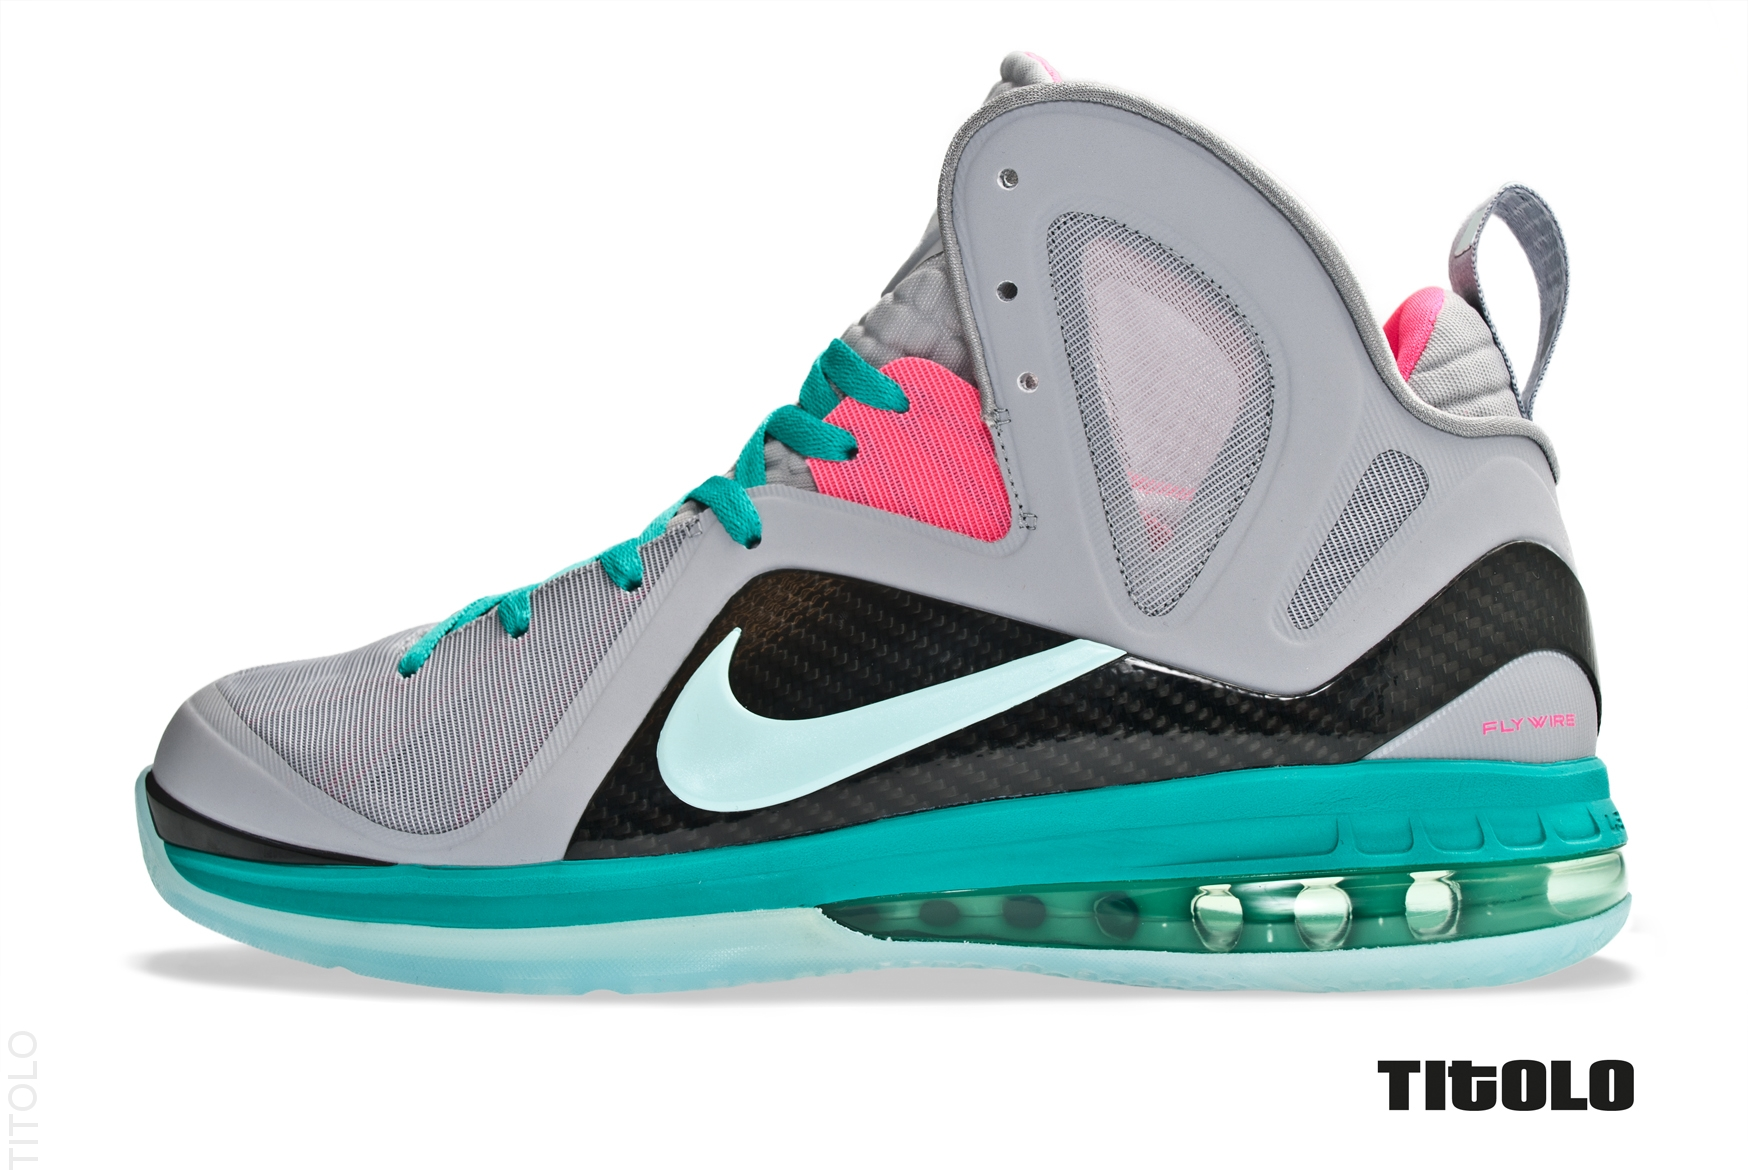 Lebron 9 Elite Colorways